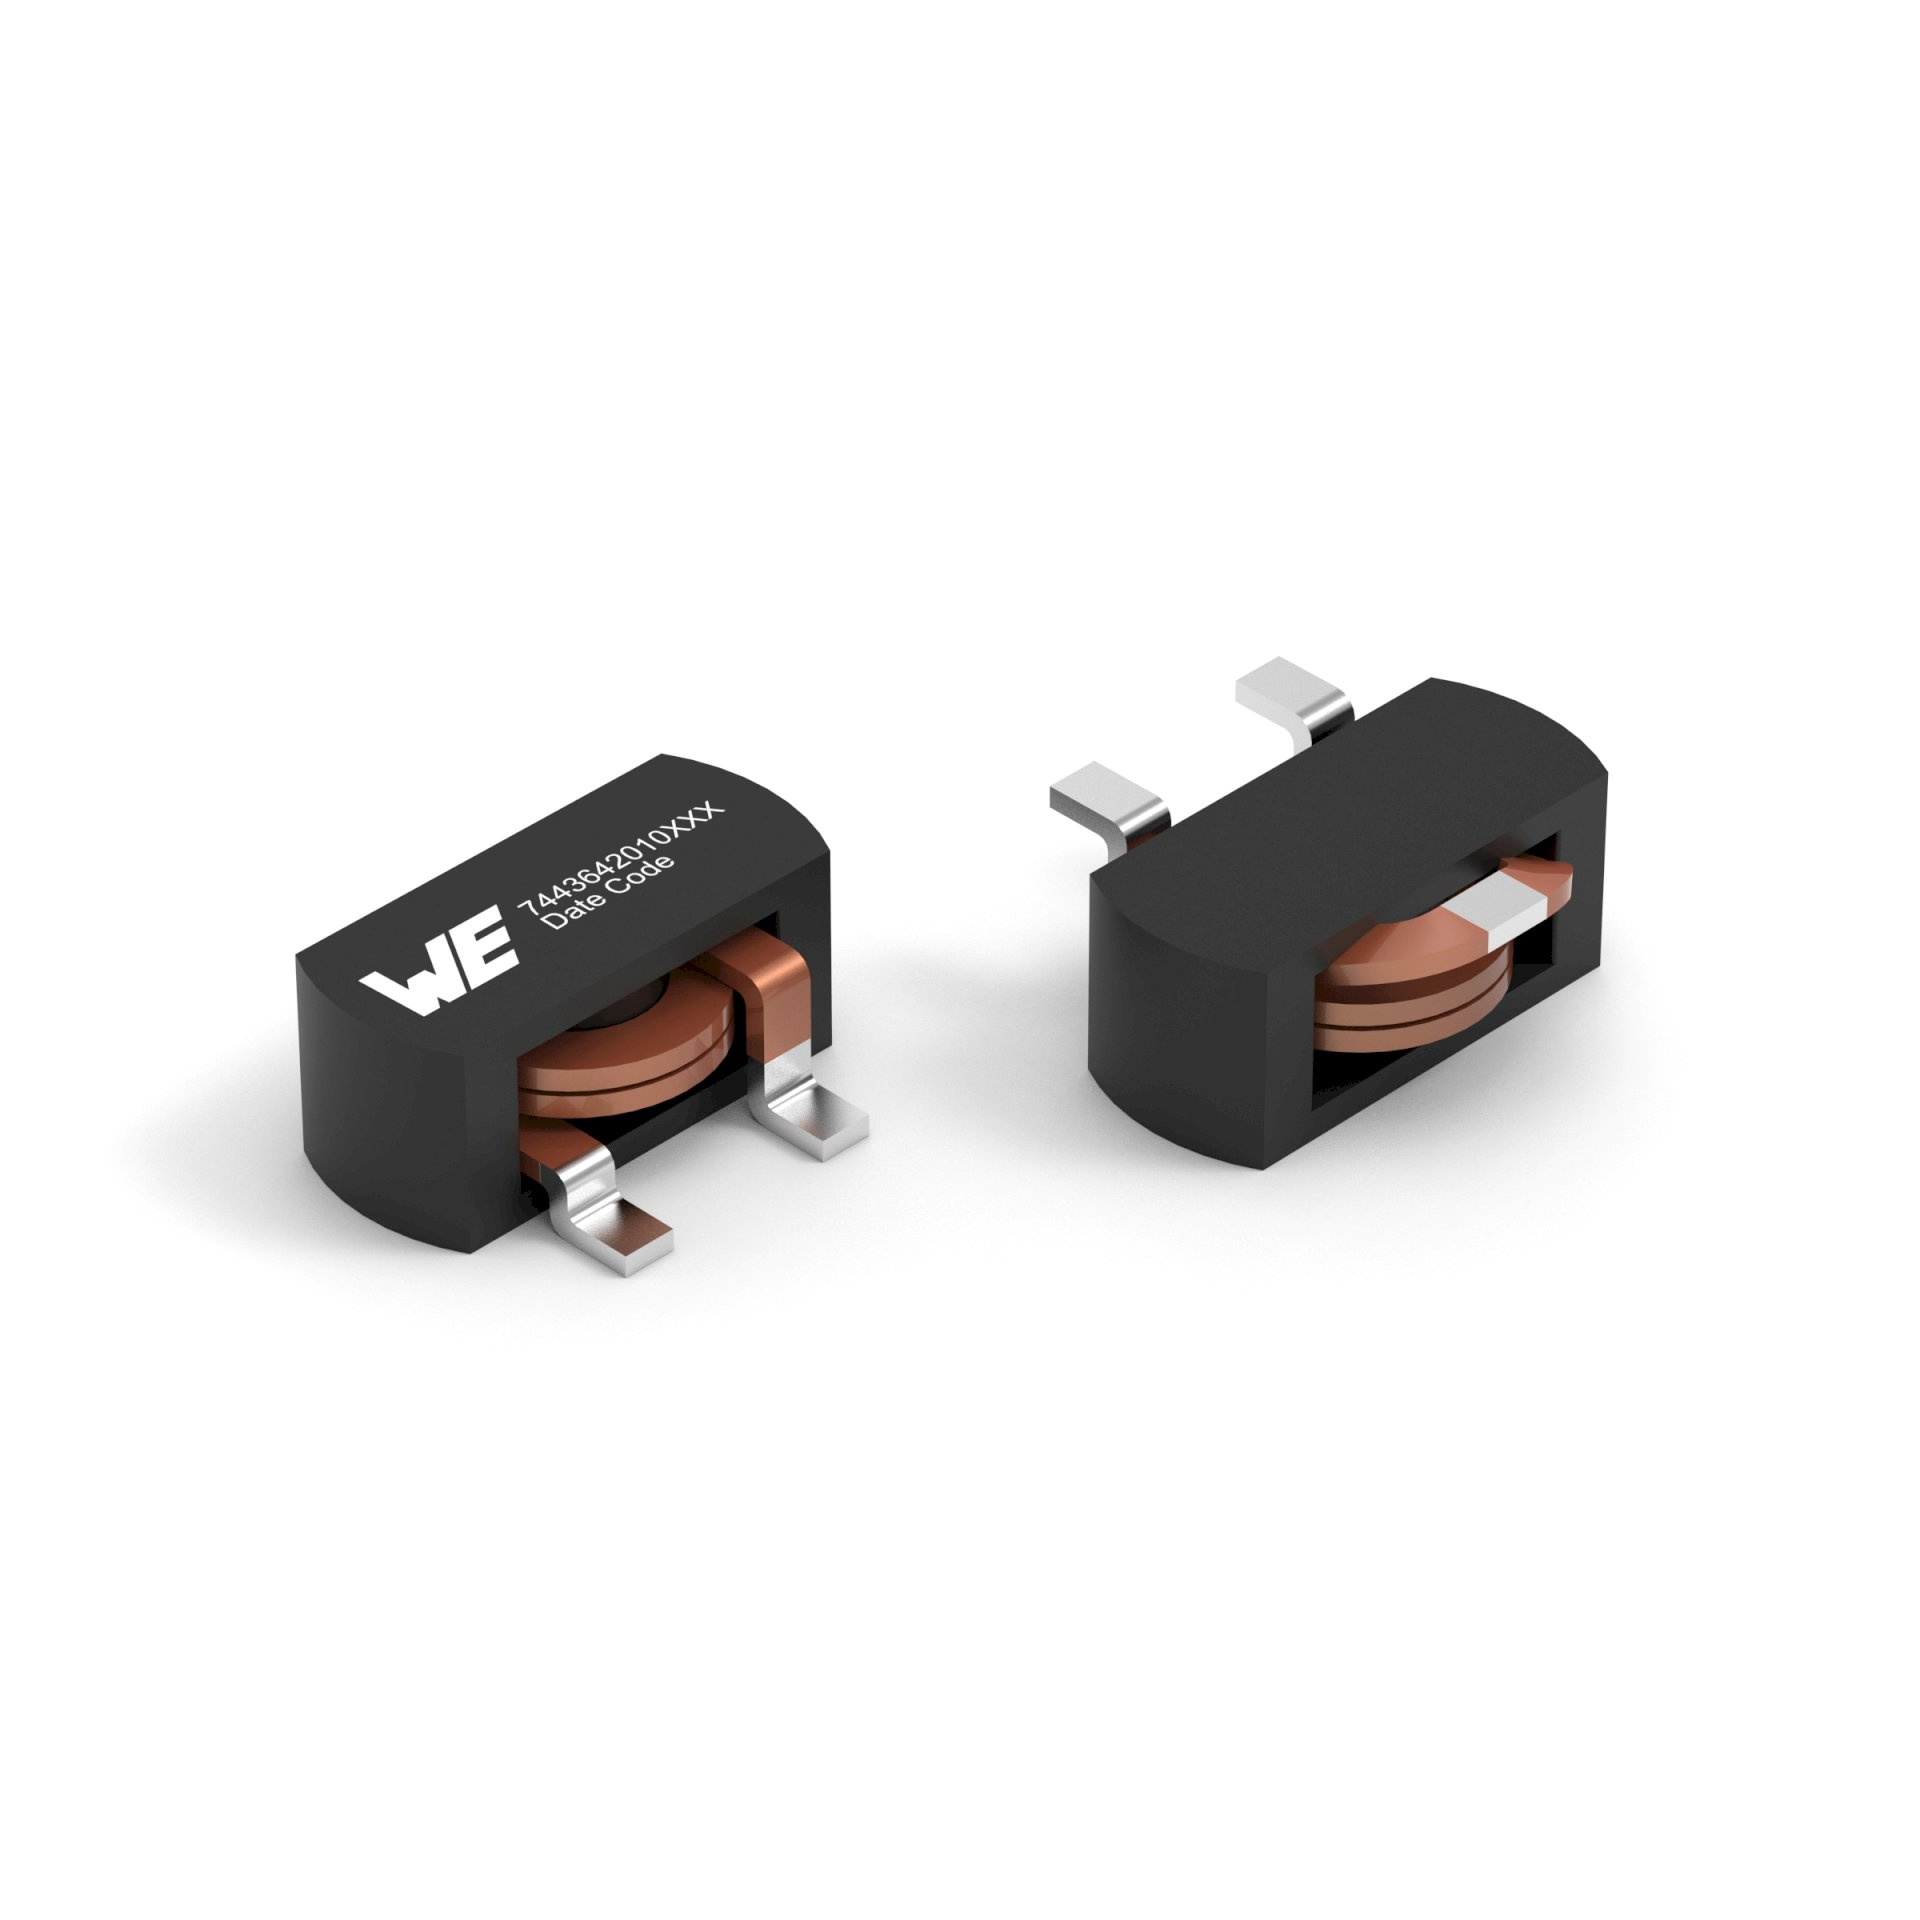 Würth Elektronik presents innovative WE-HCF-2010 high-current inductor